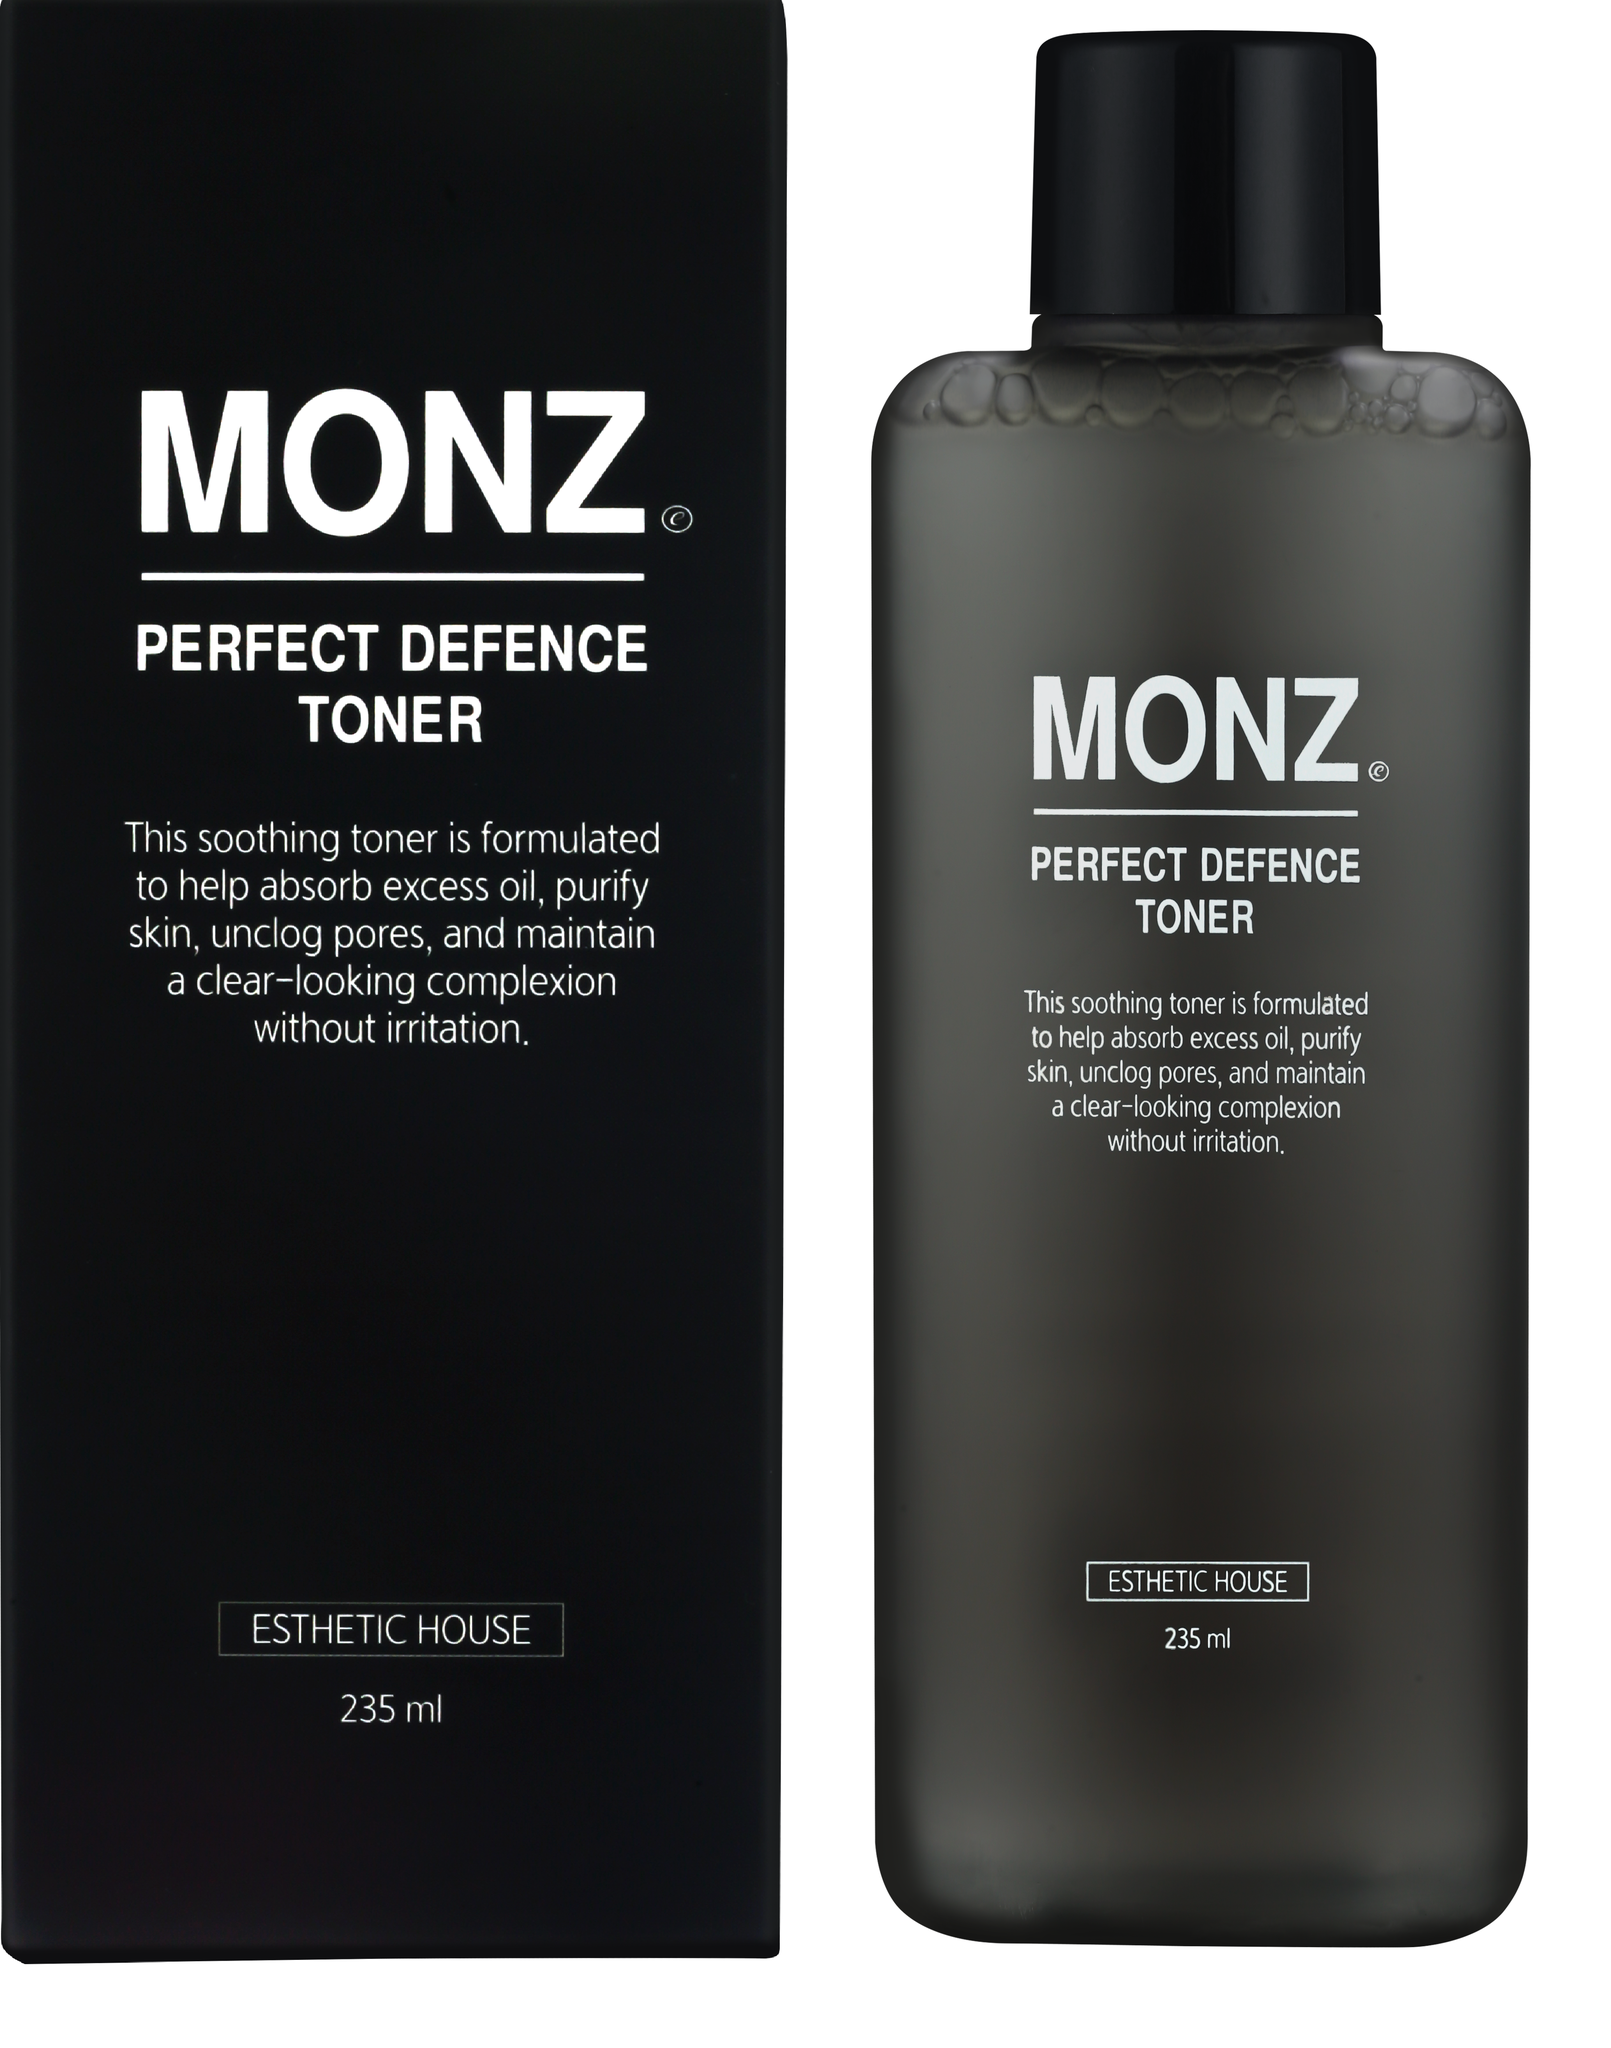 ESTHETIC HOUSE Тонер для лица МУЖСКОЙ MONZ PERFECT DEFENCE TONER, 235 мл. uploads_photos__ESTHETIC_HOUSE__011497-_ESTHETIC_HOUSE__Тонер_для_лица_МУЖСКОЙ_MONZ_PERFECT_DEFE.png